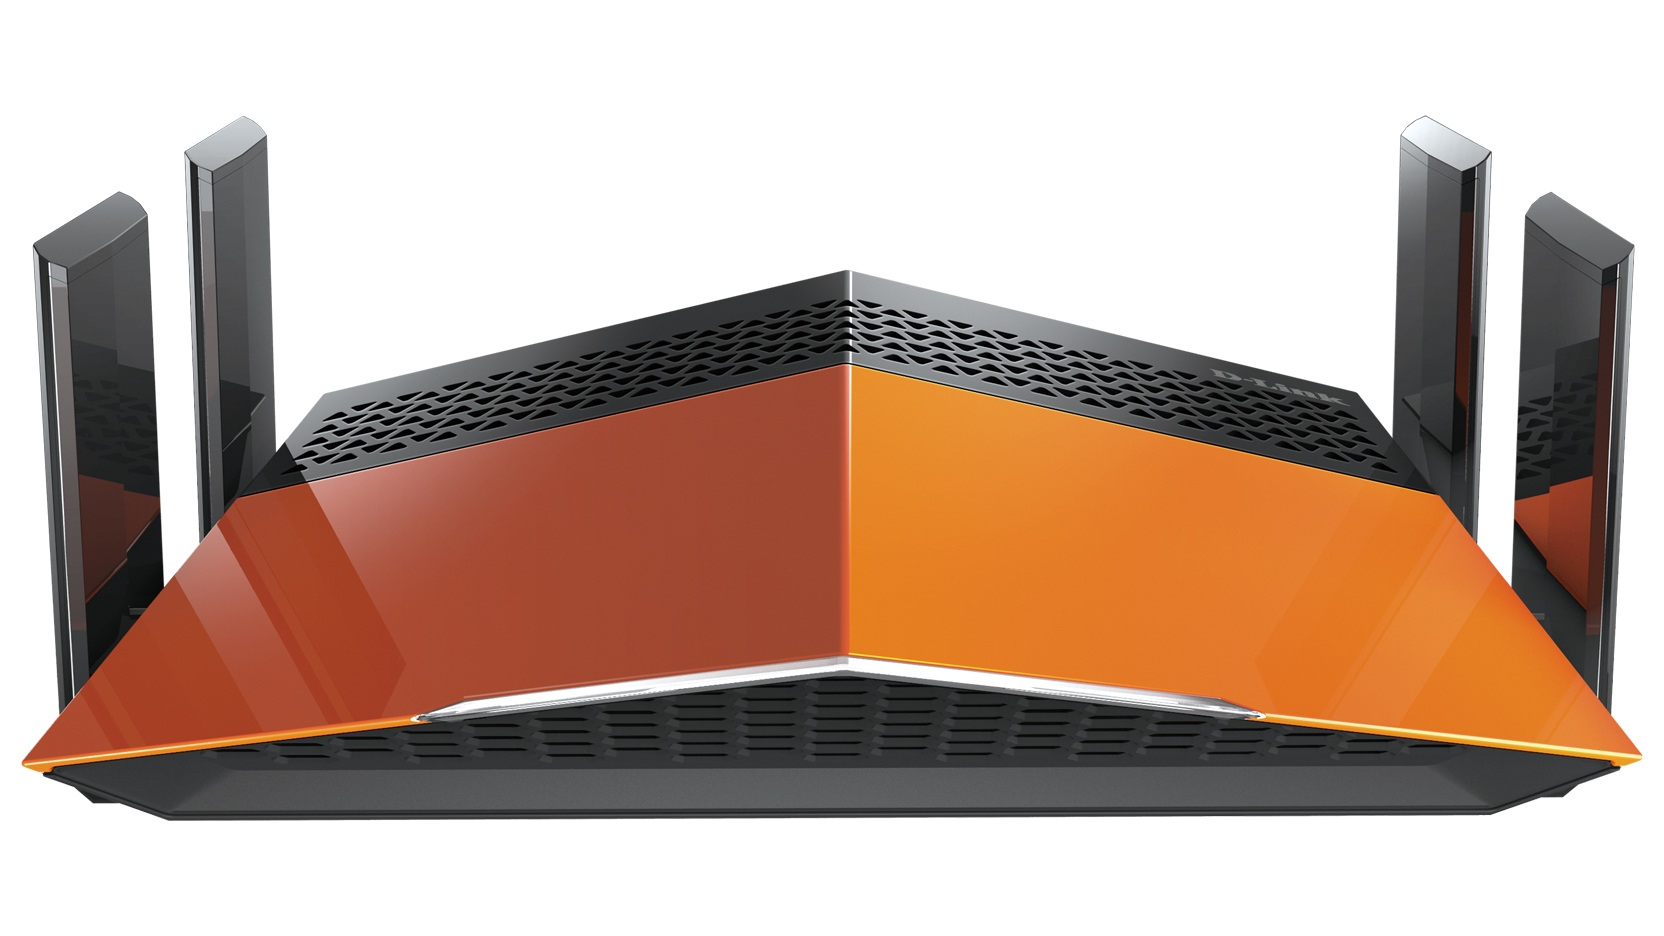 D-Link AC1900 EXO Dual-band (2.4 GHz / 5 GHz) Gigabit Ethernet Black,Orange wireless router